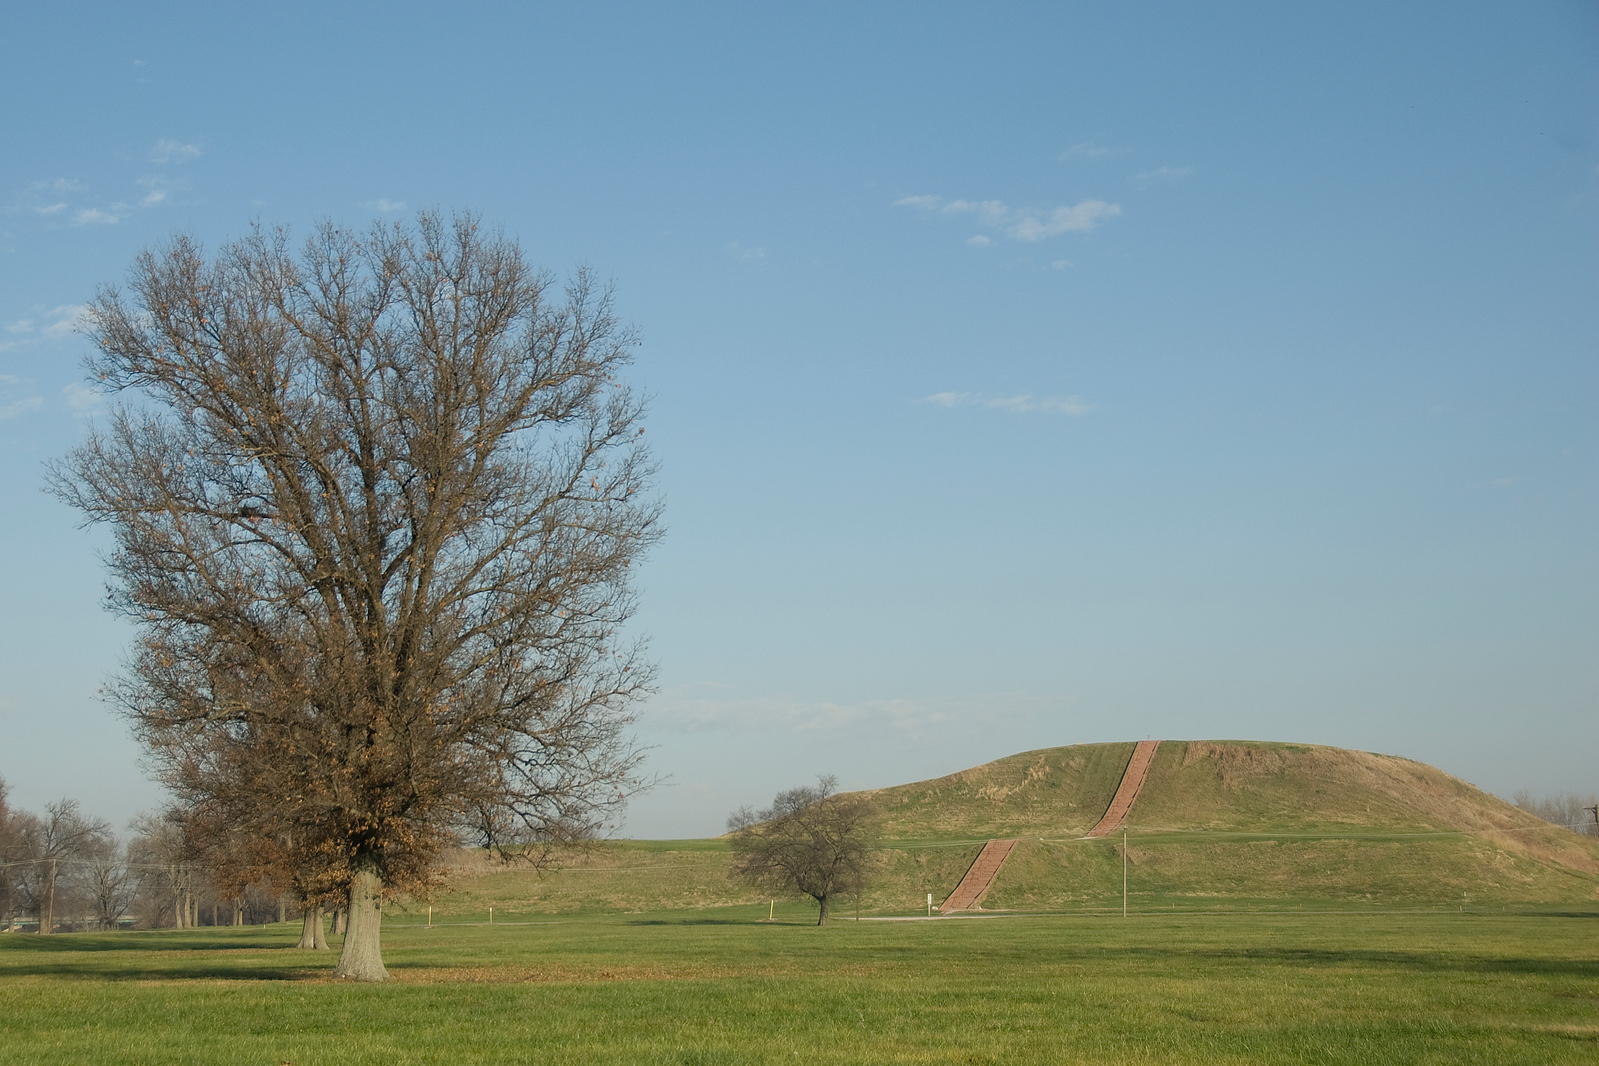 Cahokia Mounds State Historic Site - UNESCO World Heritage Site